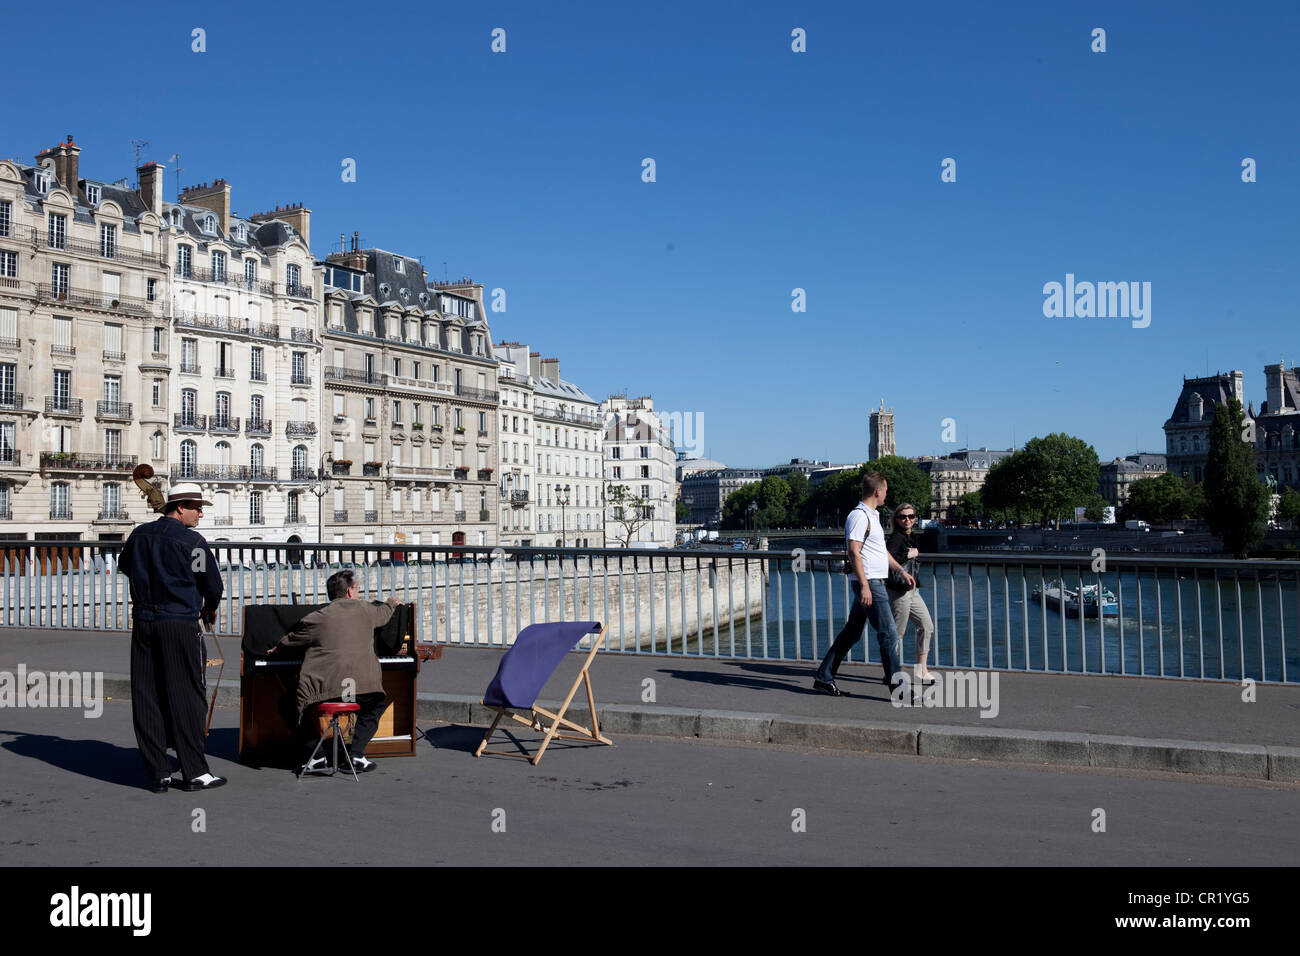 France, Paris, Pont Saint-Louis, pedestrian bridge linking ile Saint-Louis and ile de la Cite - Stock Image